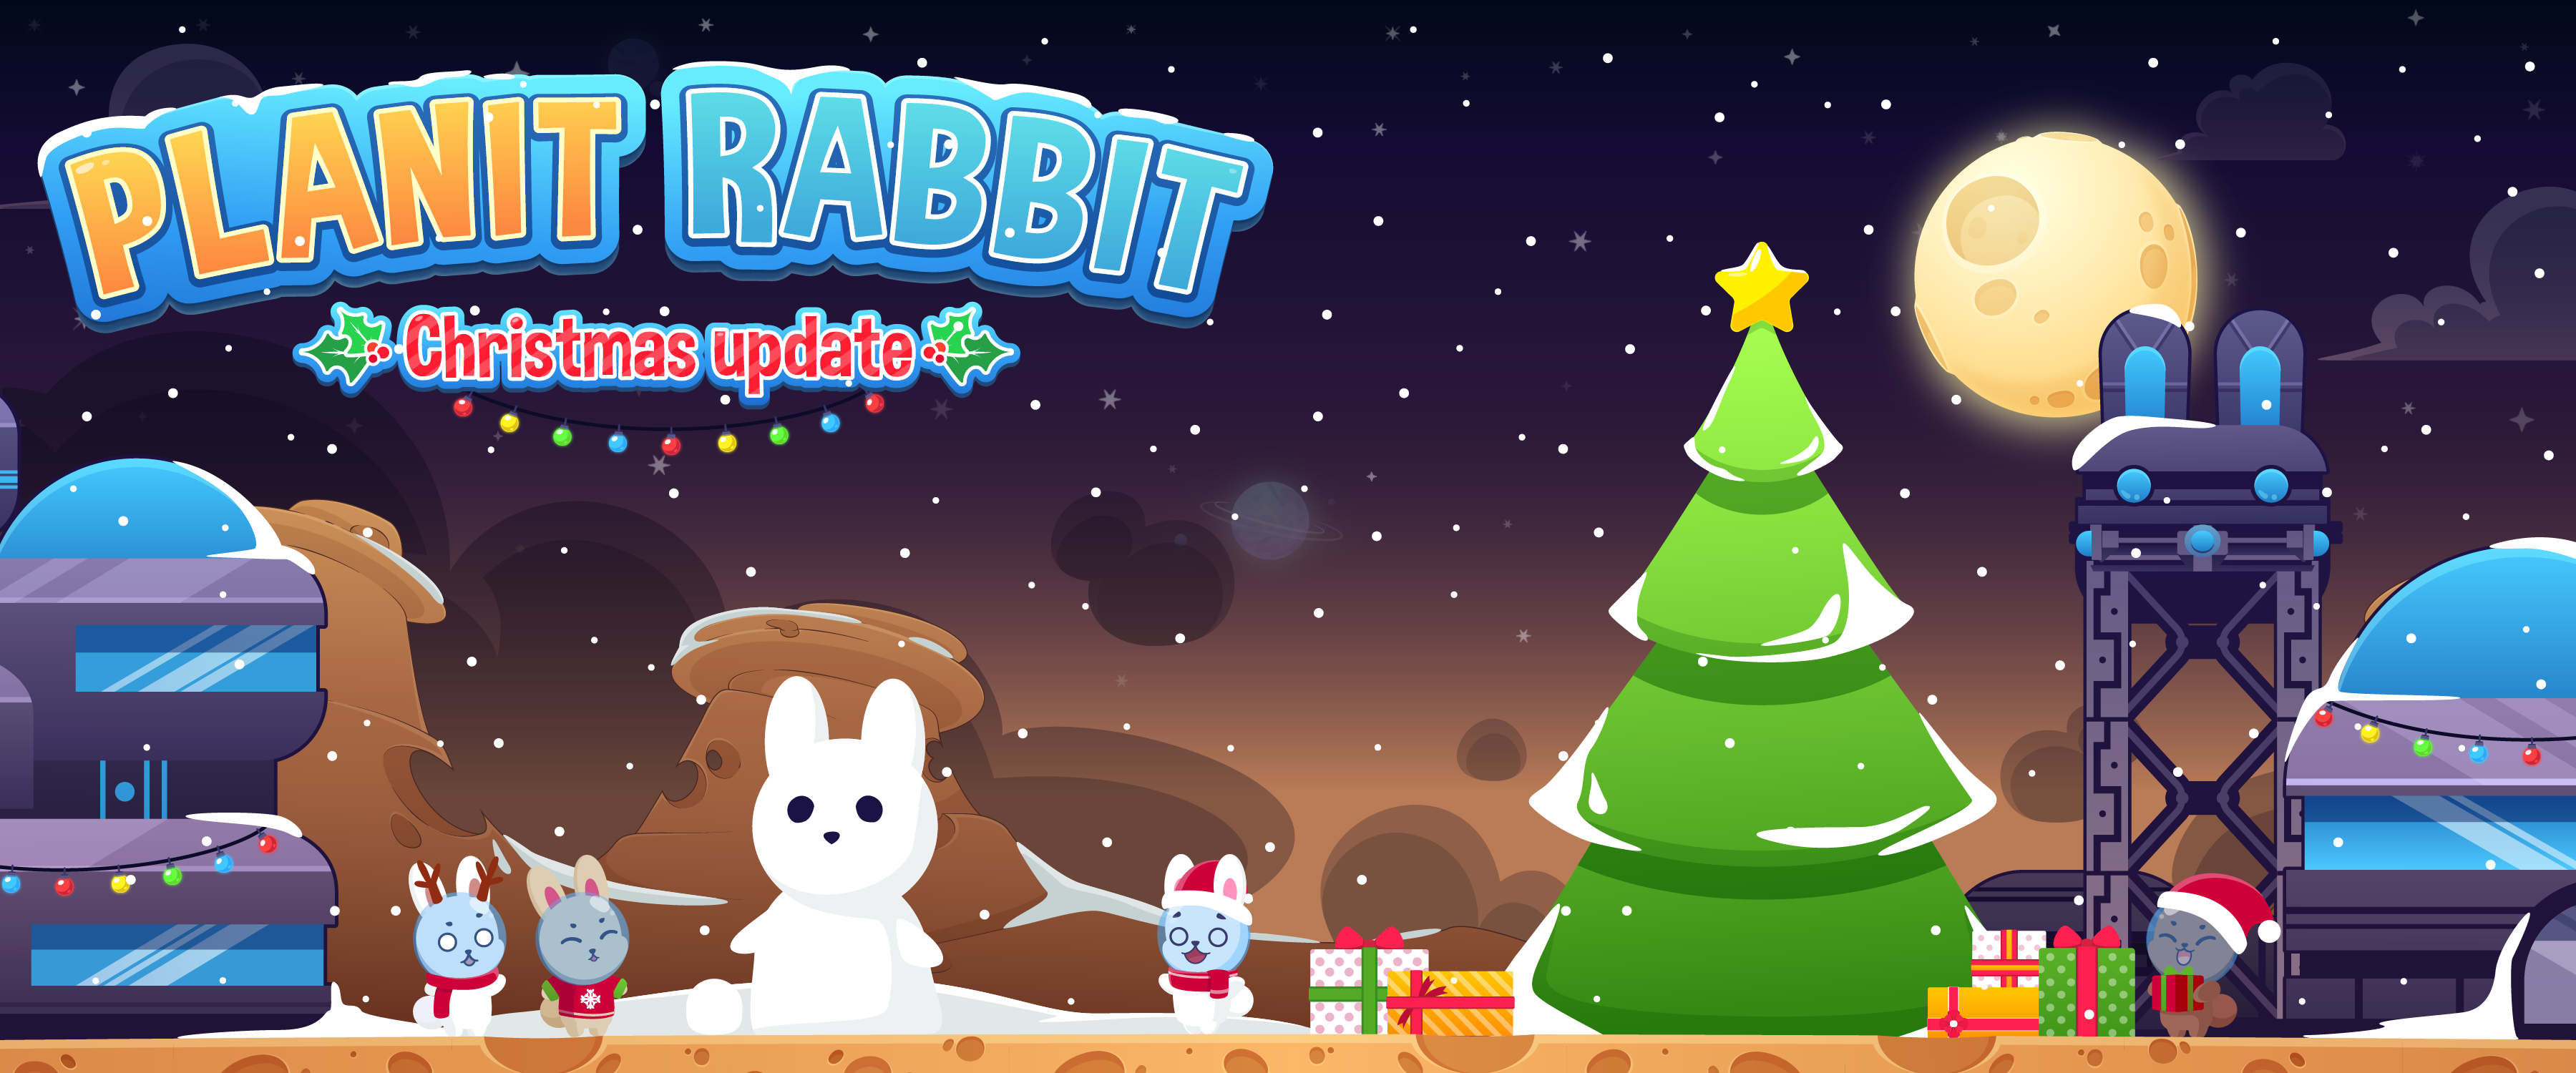 Planet Rabbit Christmas